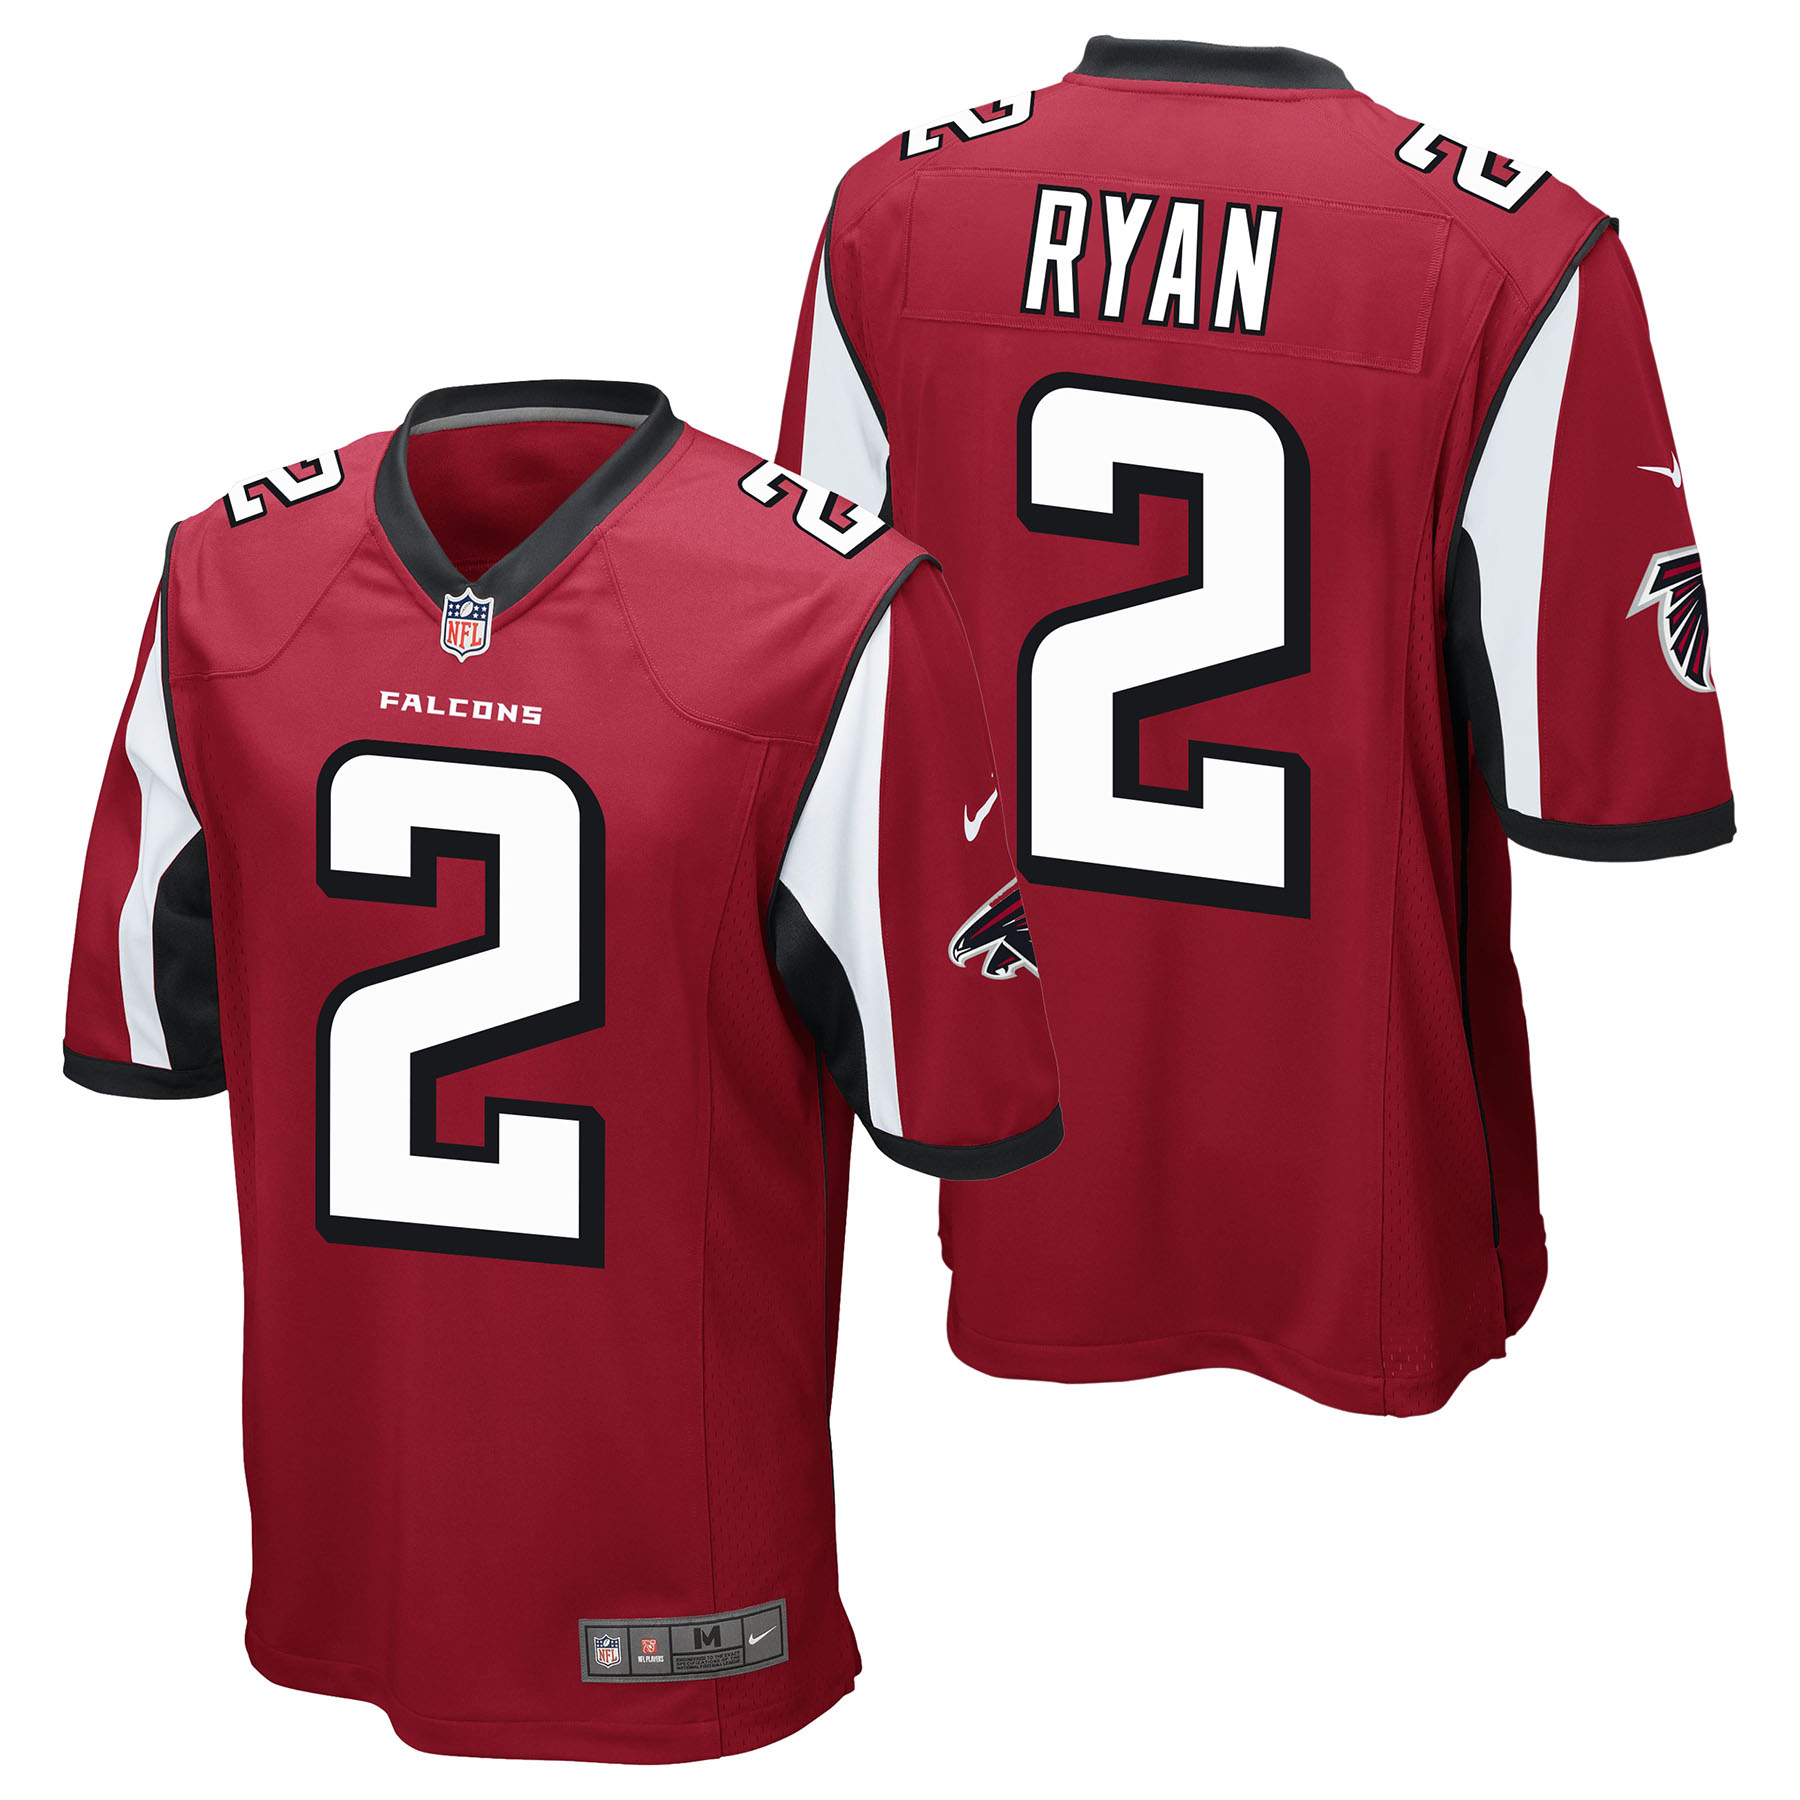 Atlanta Falcons Home Game Jersey - Matt Ryan - Junior